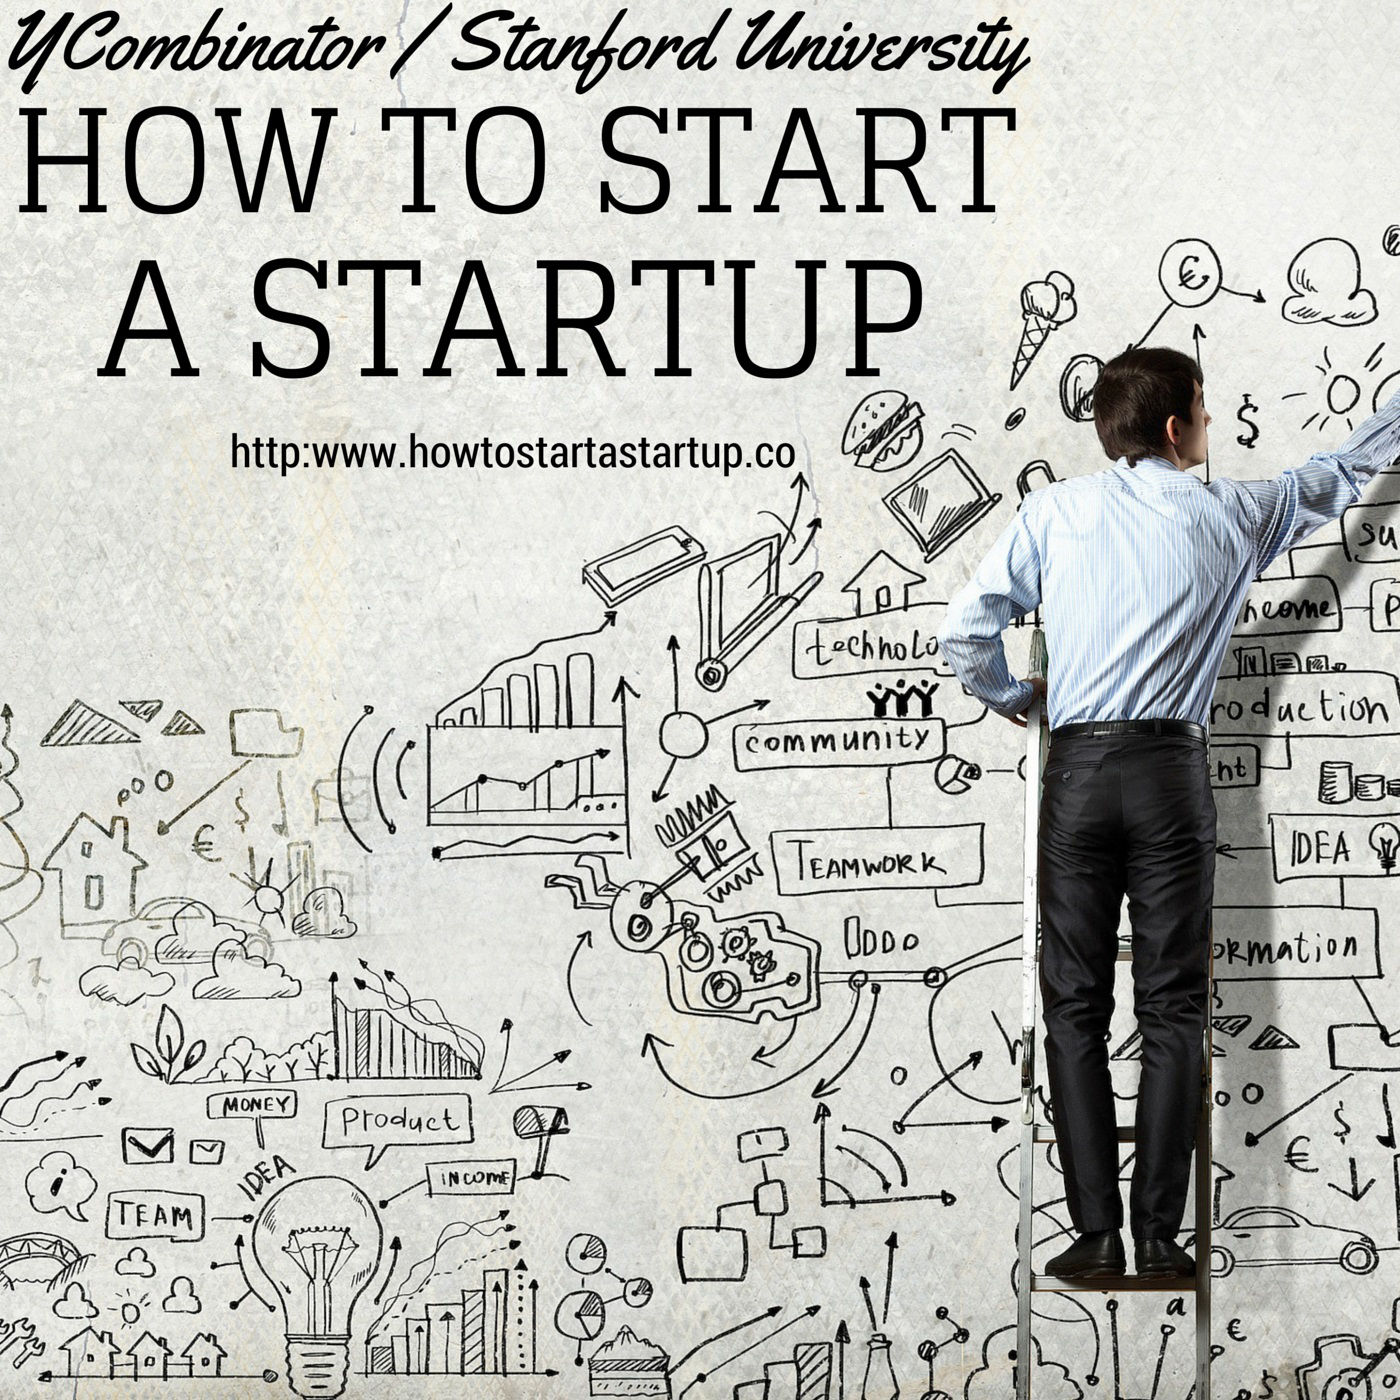 how to move up in a startup